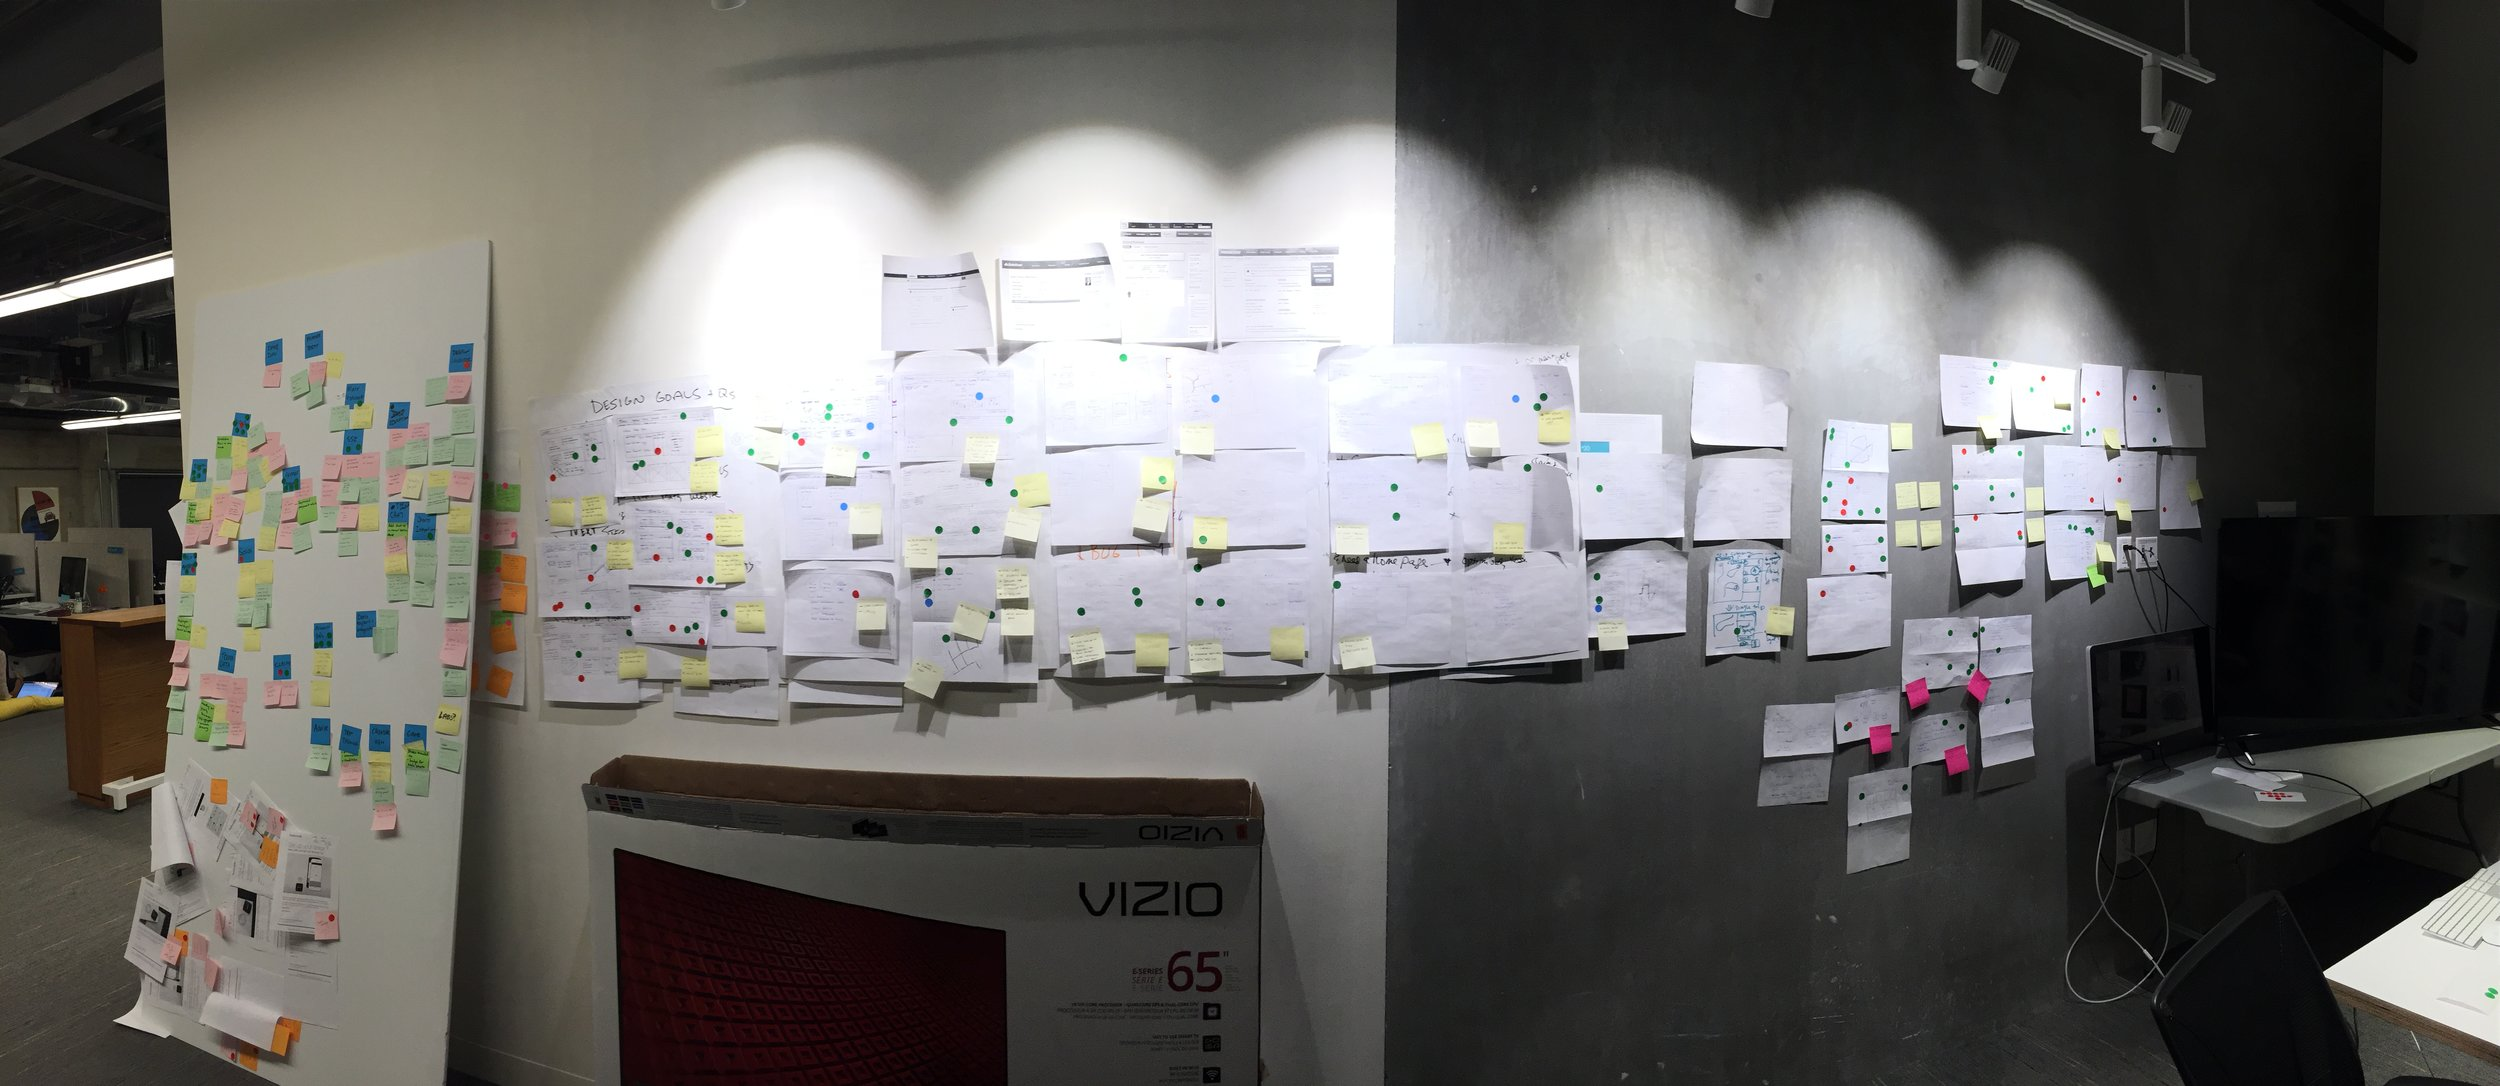 Designers, product managers, and engineers sketched ideas based on the MVP product and voted on ideas.